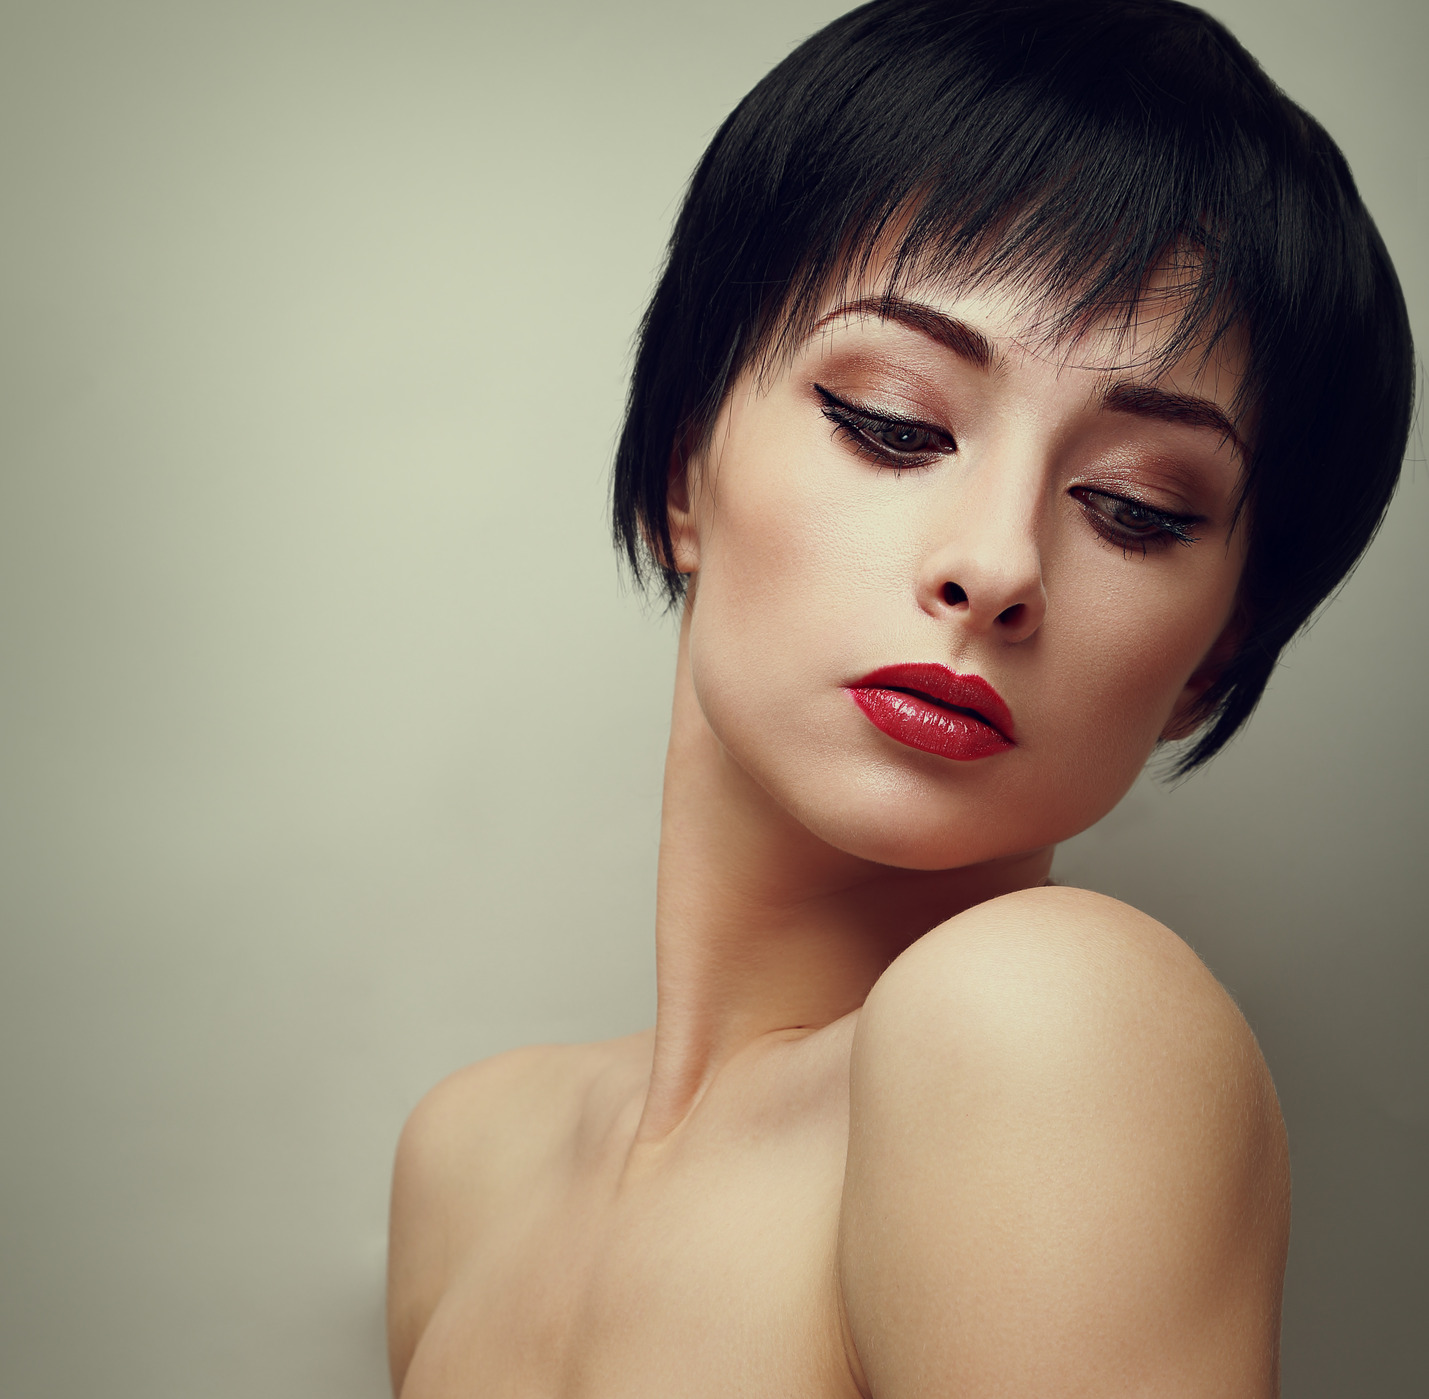 photodune-7765321-sexy-bright-makeup-woman-with-black-short-hair-style-looking-vintage-portrait-m.jpg